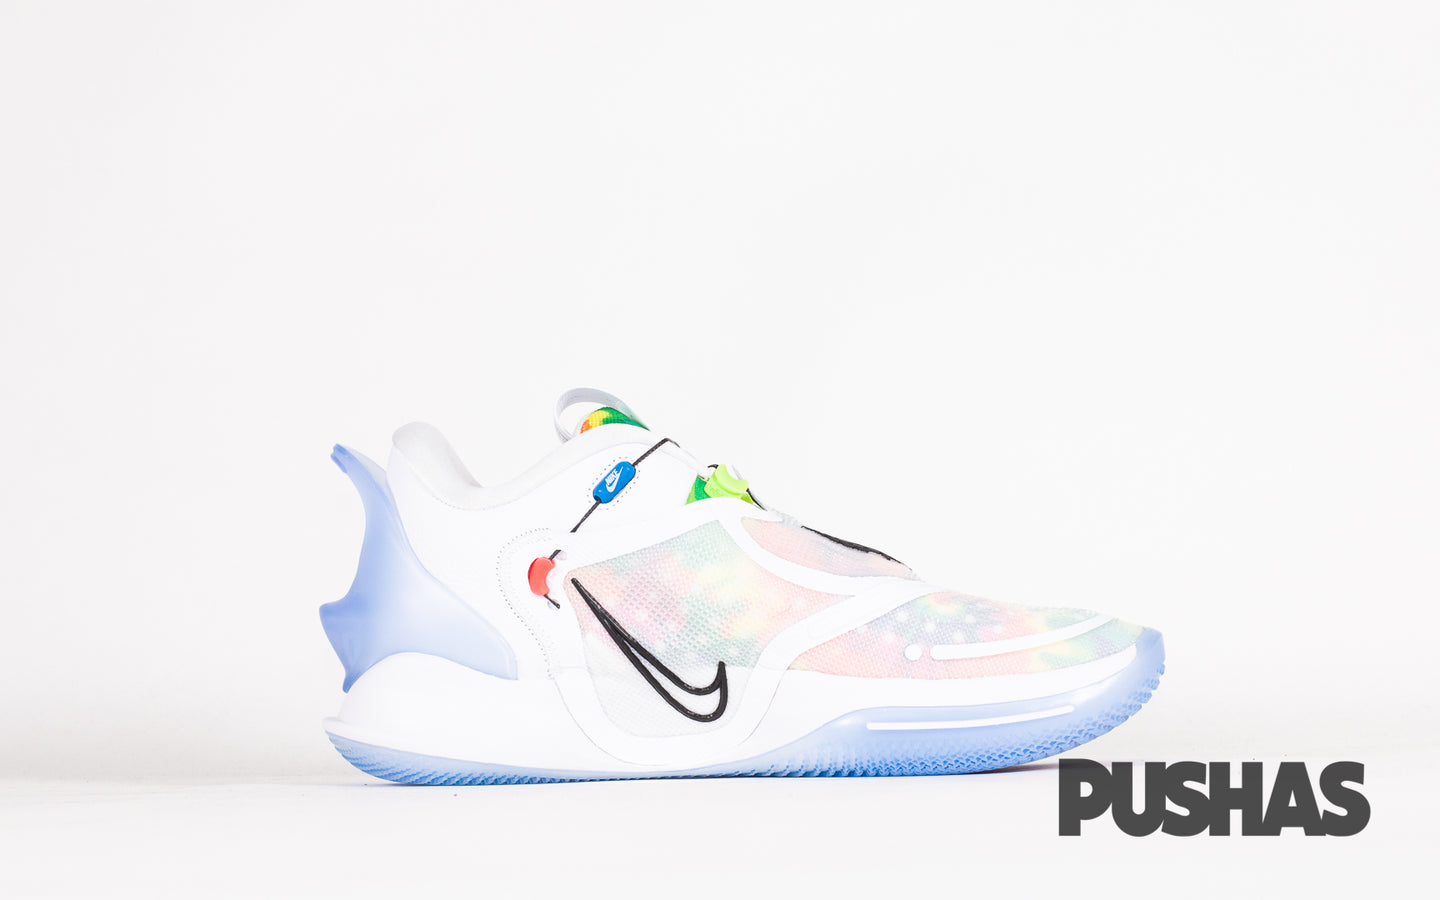 Adapt Bb 2 0 Tie Dye Pushas